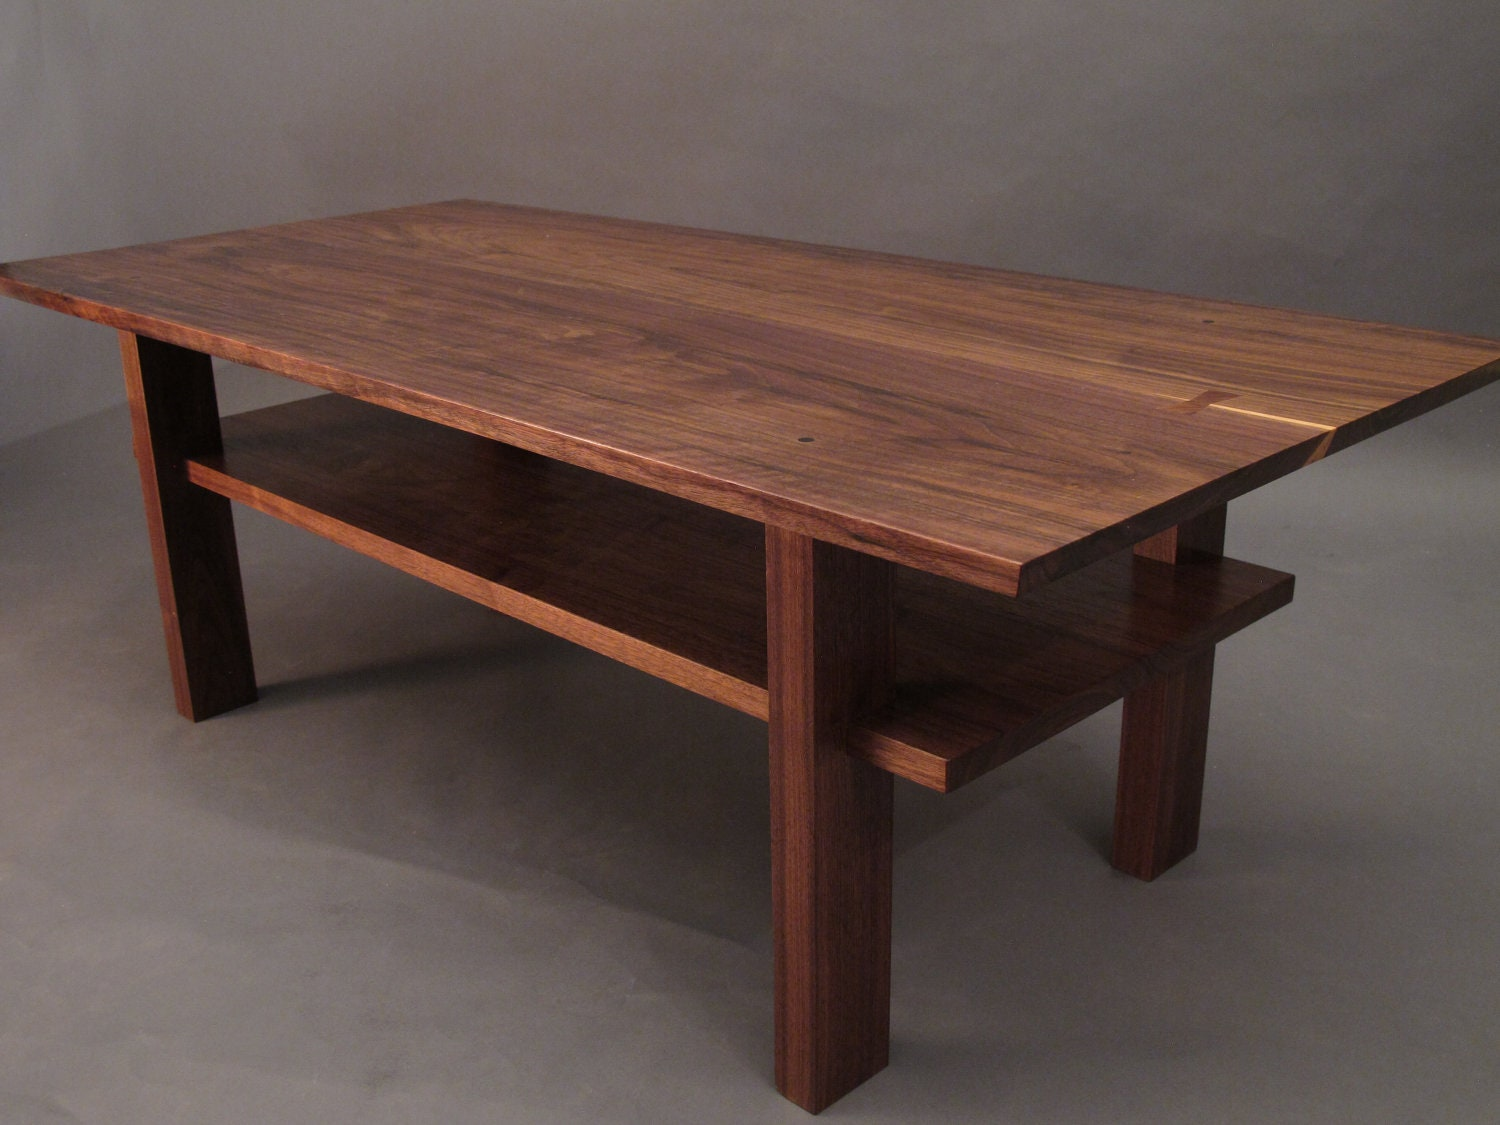 Walnut coffee table small wood tables for living room narrow for Modern wooden coffee tables